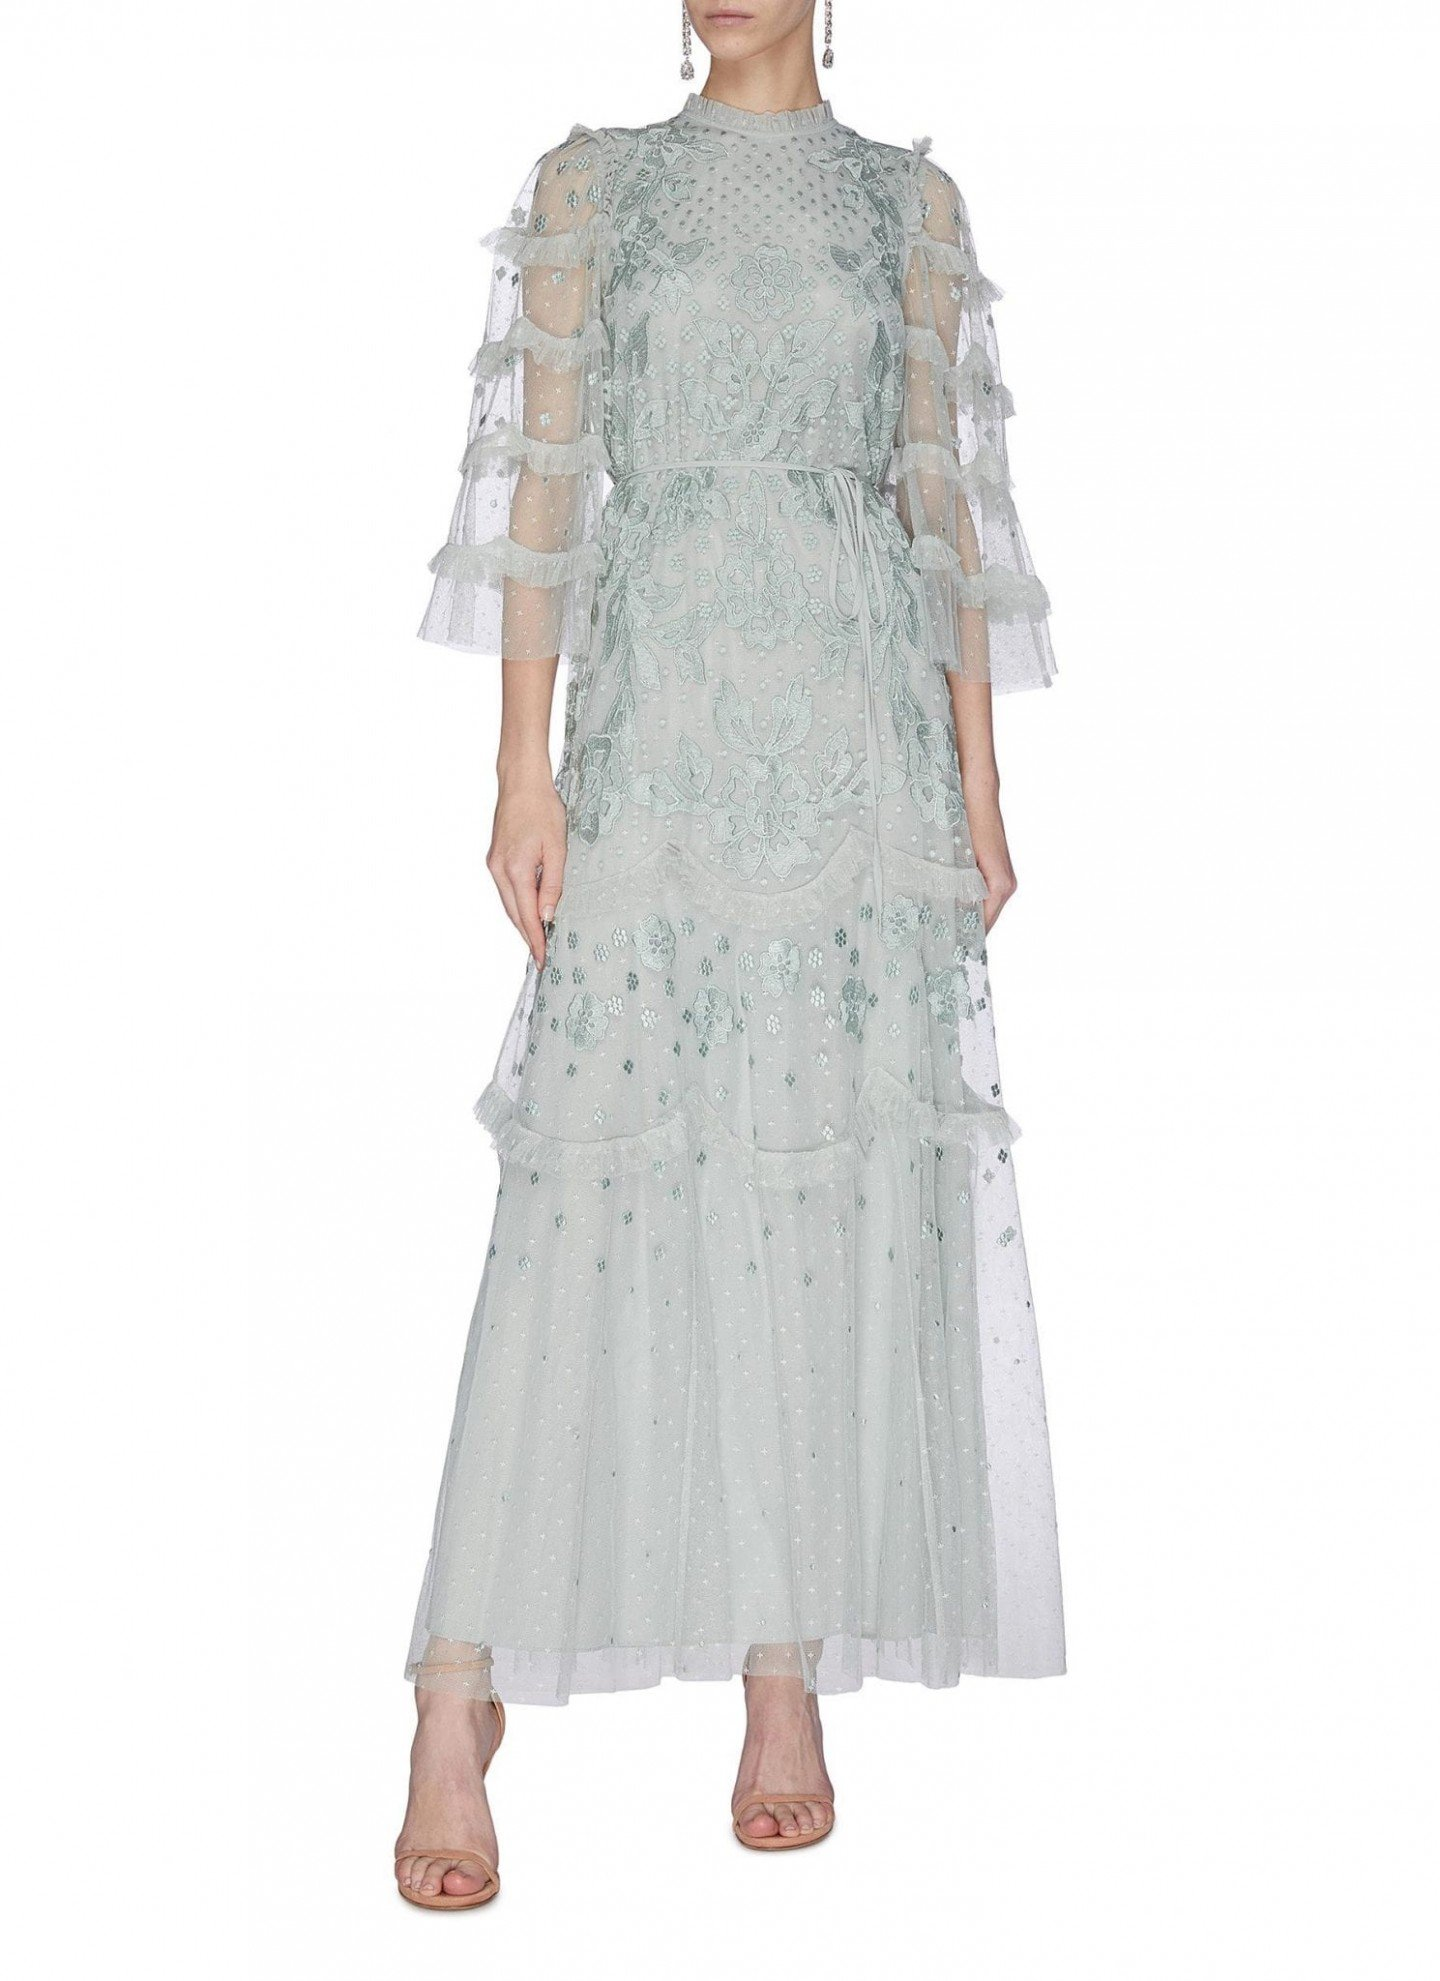 NEEDLE & THREAD Lace Patchwork Gown